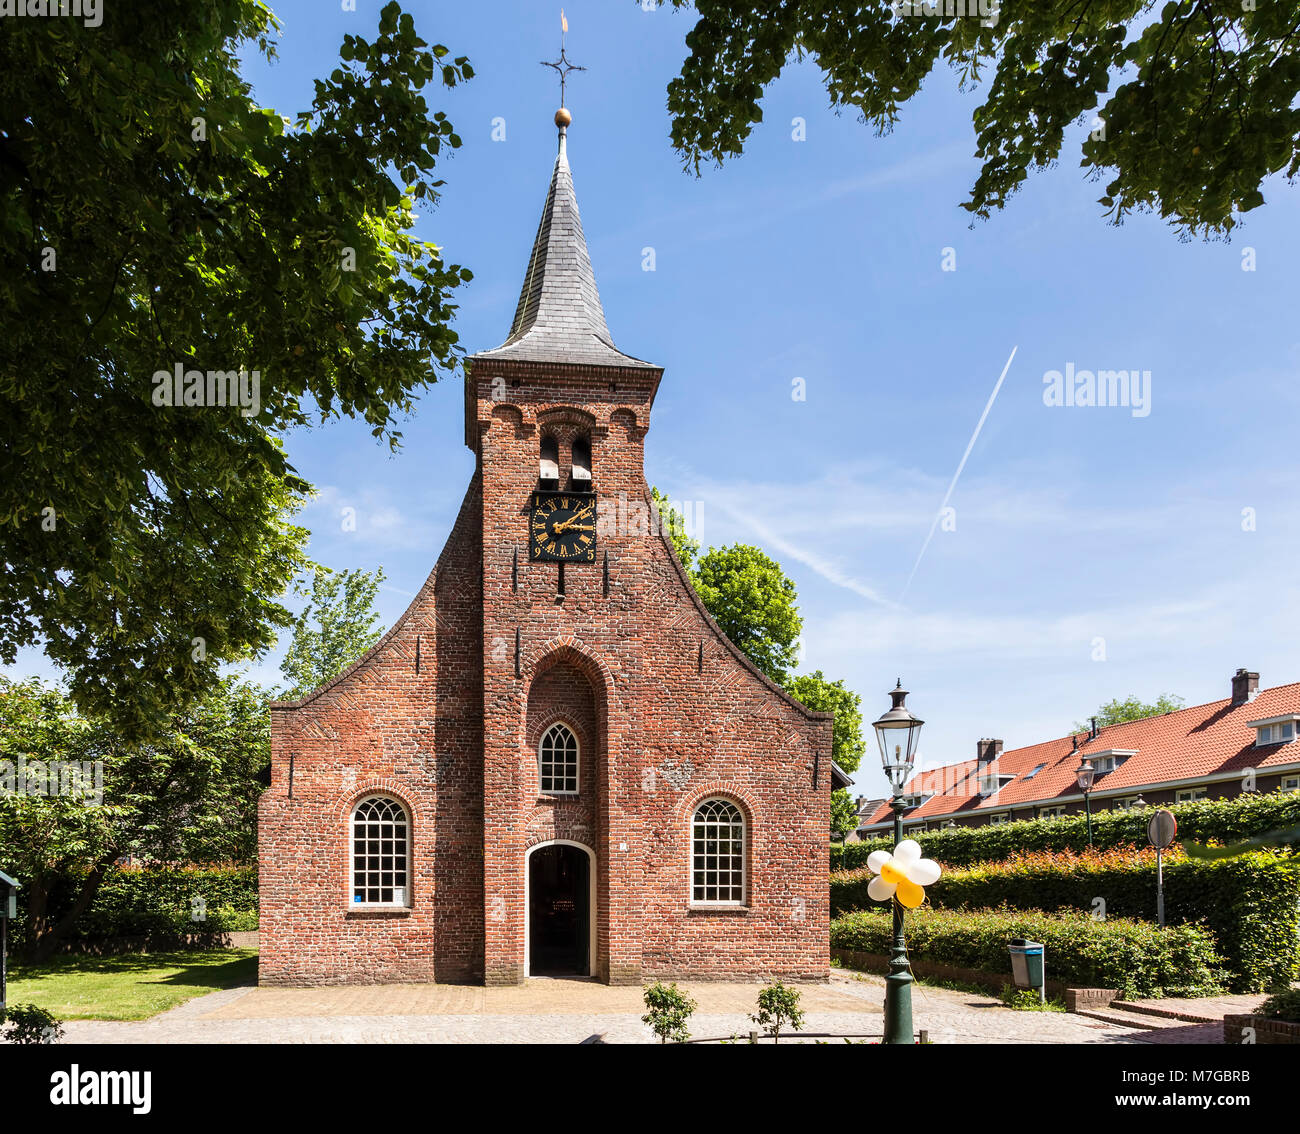 Hasseltse Chapel, in the dutch souther city of Tilburg. It was built around 1540 and dedicate to the Virgin Mary. - Stock Image